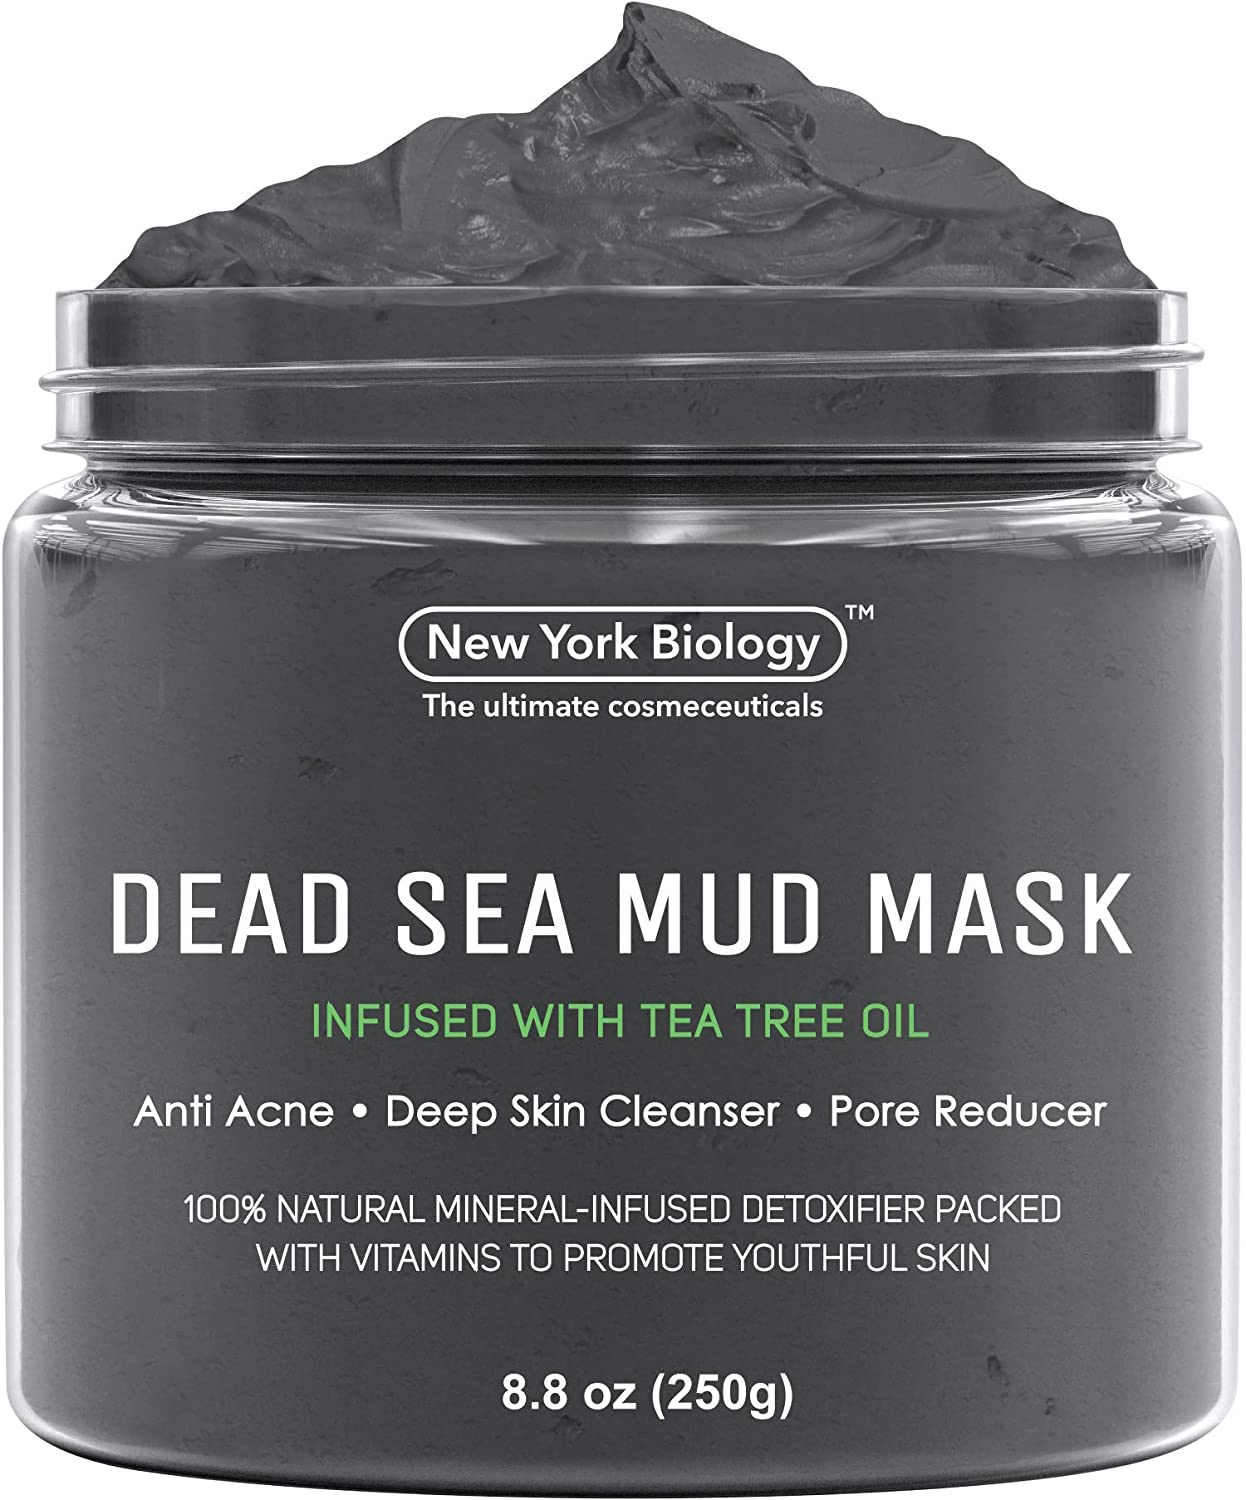 New York Biology Dead Sea Mud Mask Infused with Tea Tree - 100% Natural Spa Quality - Pore Reducer to Help with Acne, Blackheads and Oily Skin Tightens Skin for A Healthier Complexion - 8.8 oz